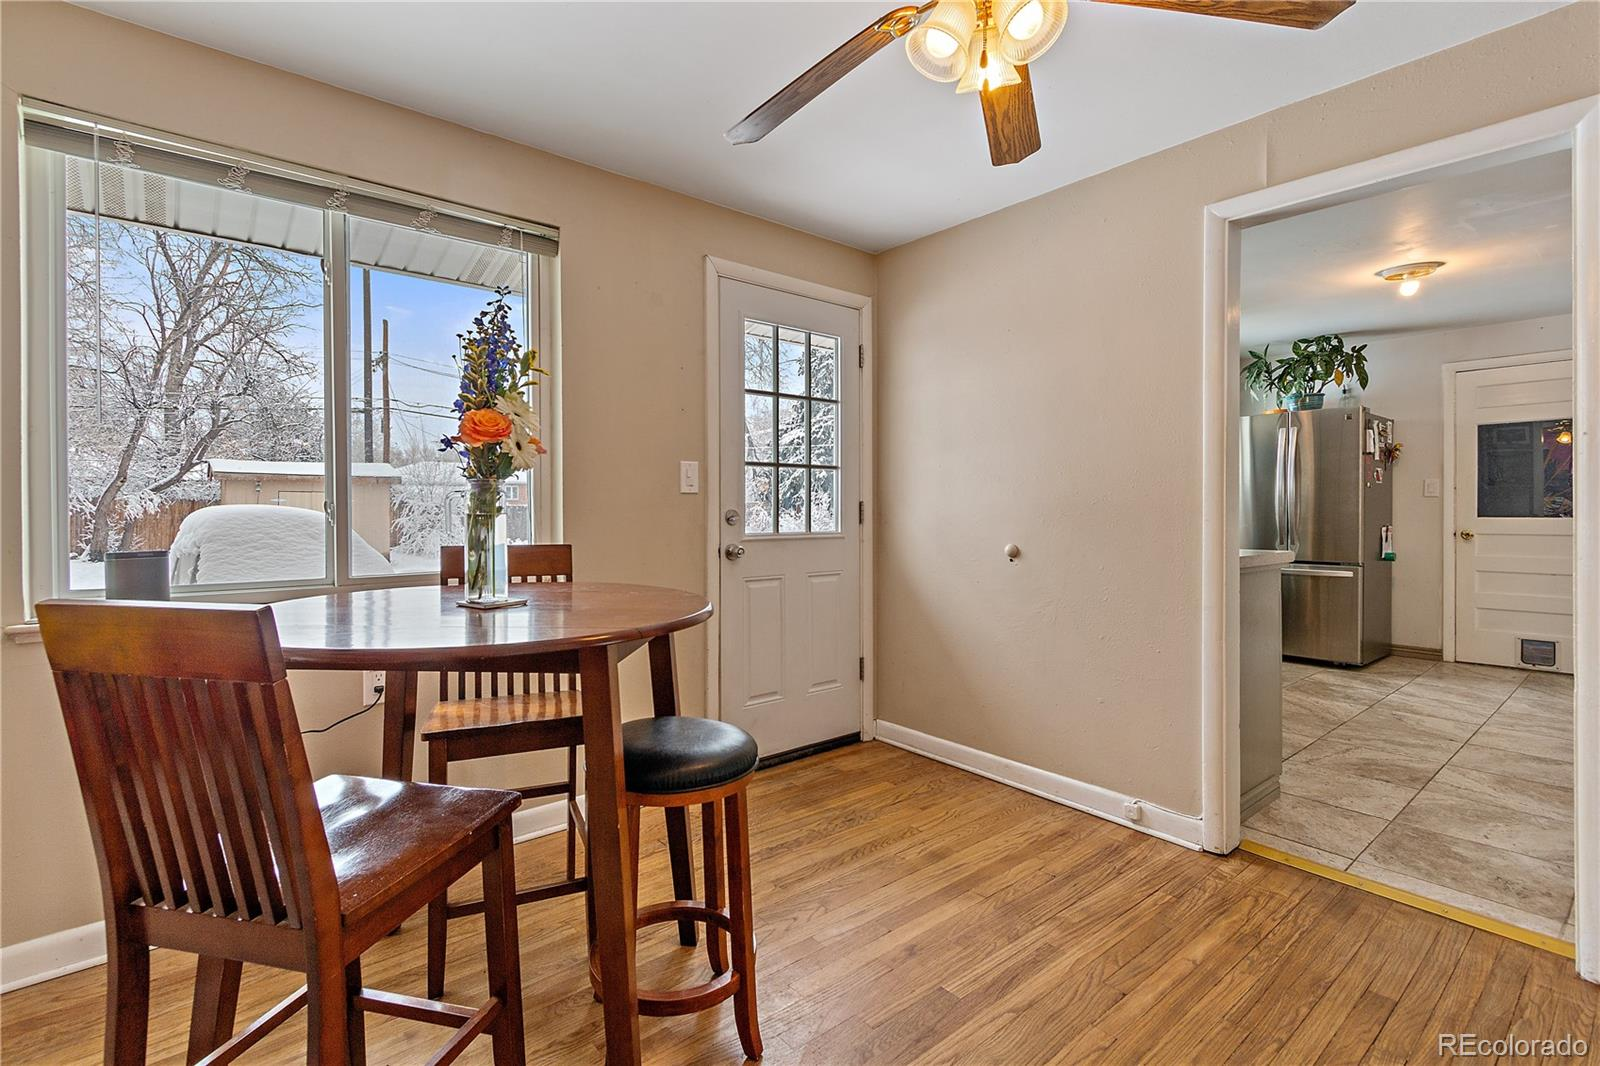 MLS# 5584211 - 12 - 8105 W 16th Place, Lakewood, CO 80214